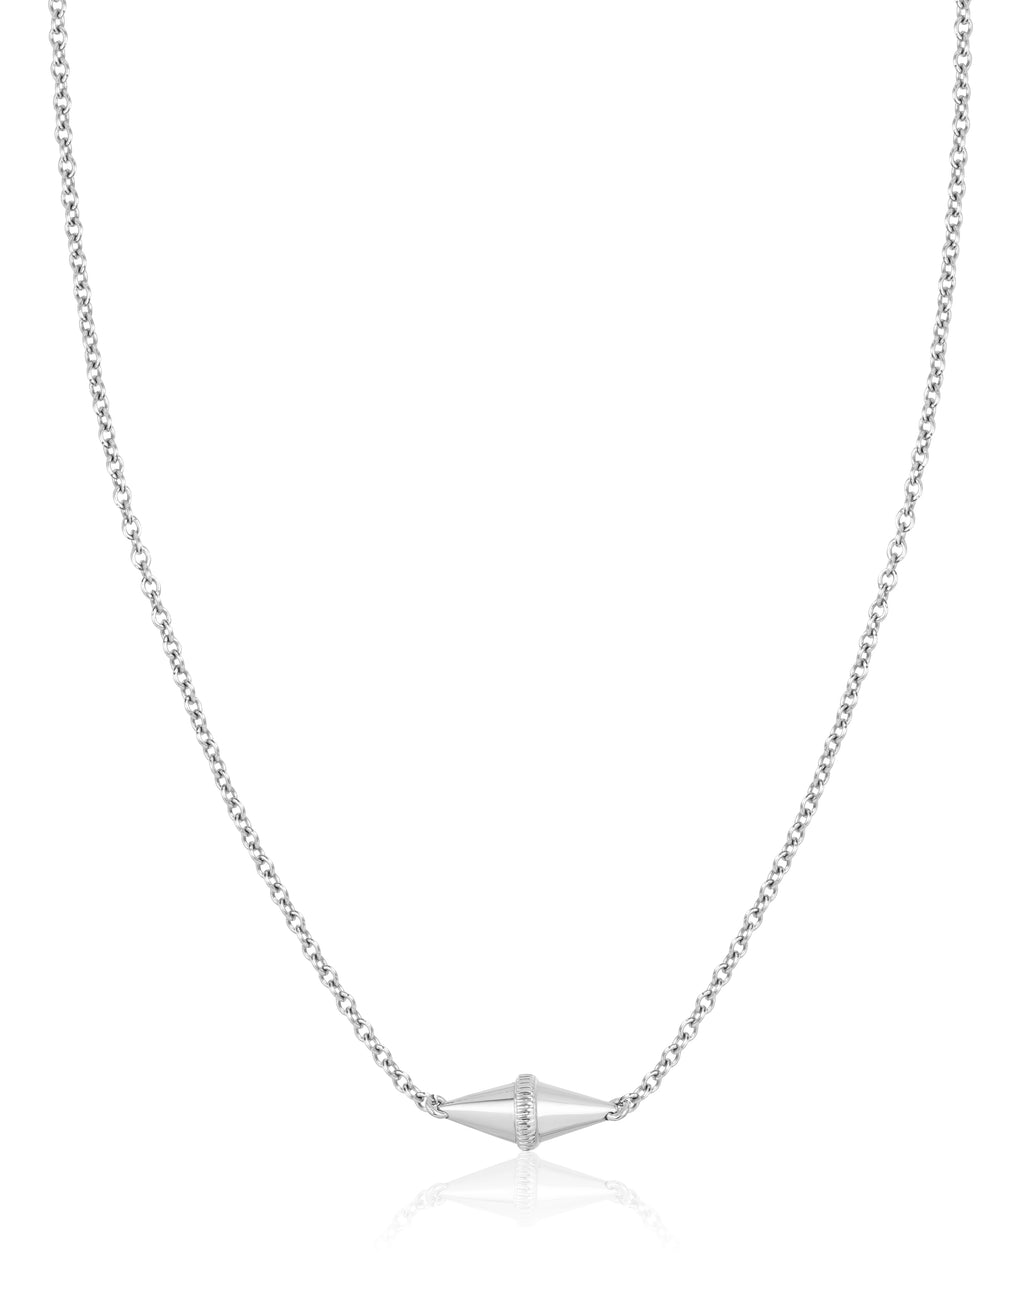 The Archi Small Pendant Necklace